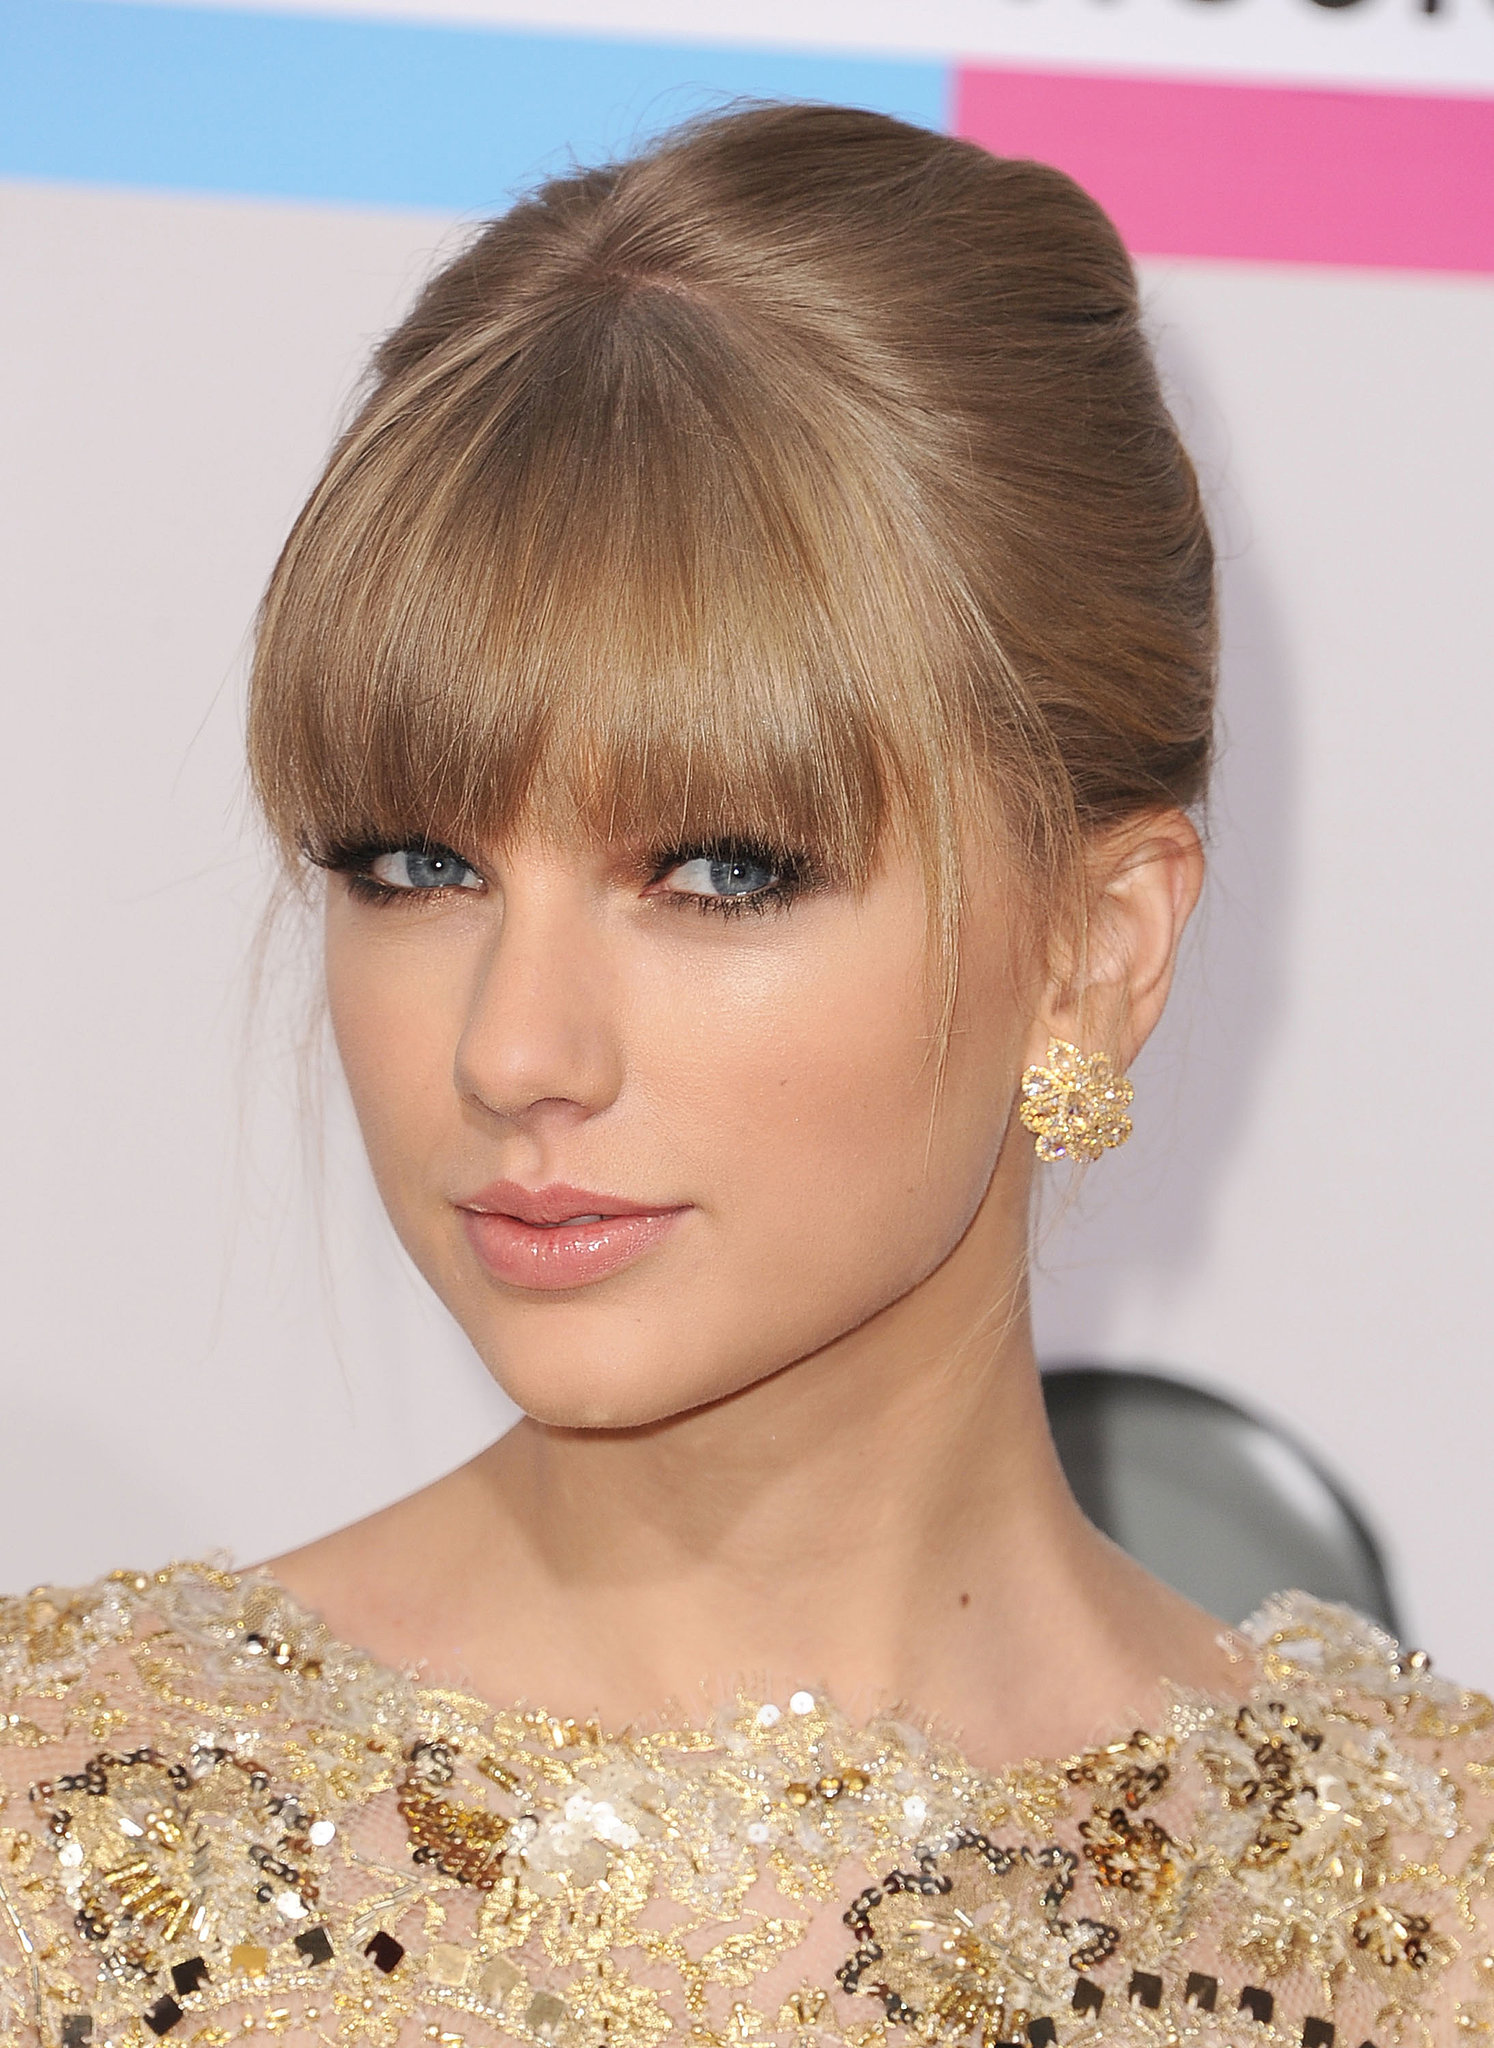 Playing-her-hair-makeup-2012-American-Music-Awards